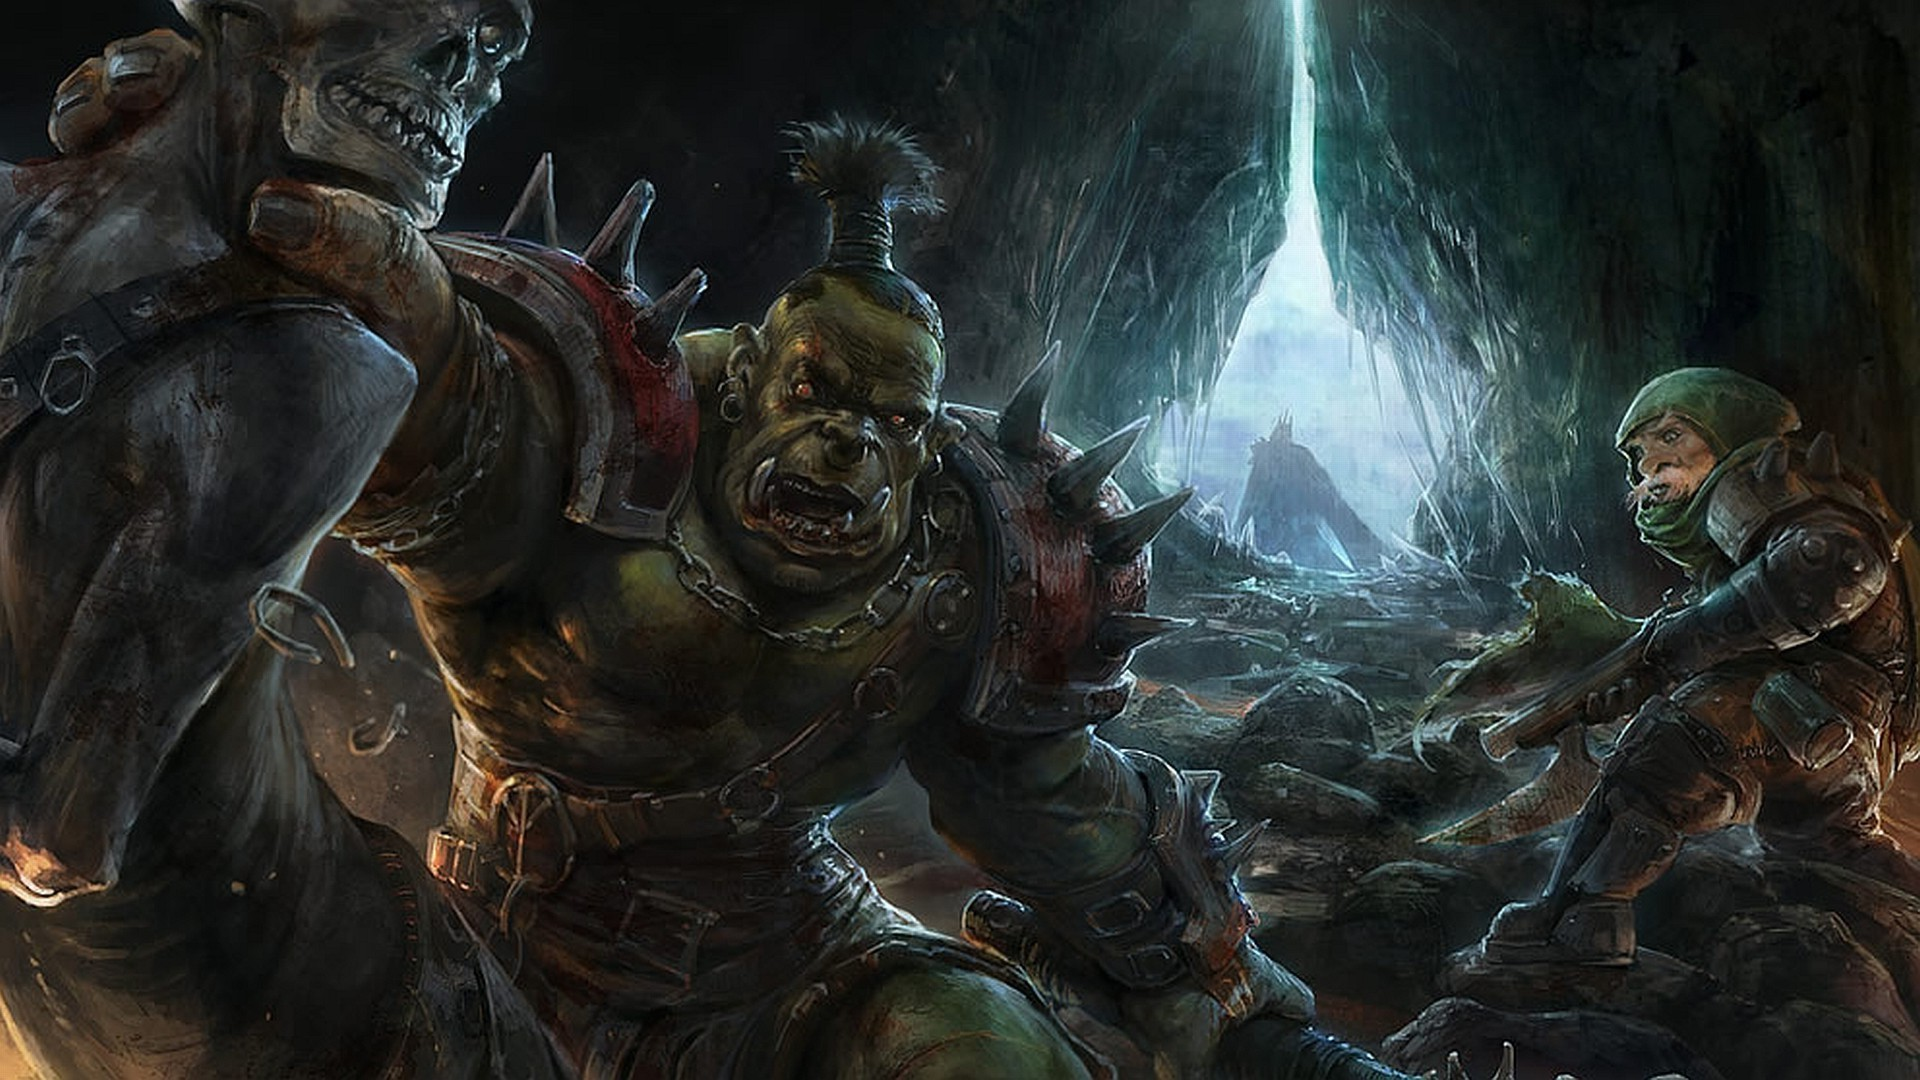 Fighting off the orcs wallpaper   1055902 1920x1080